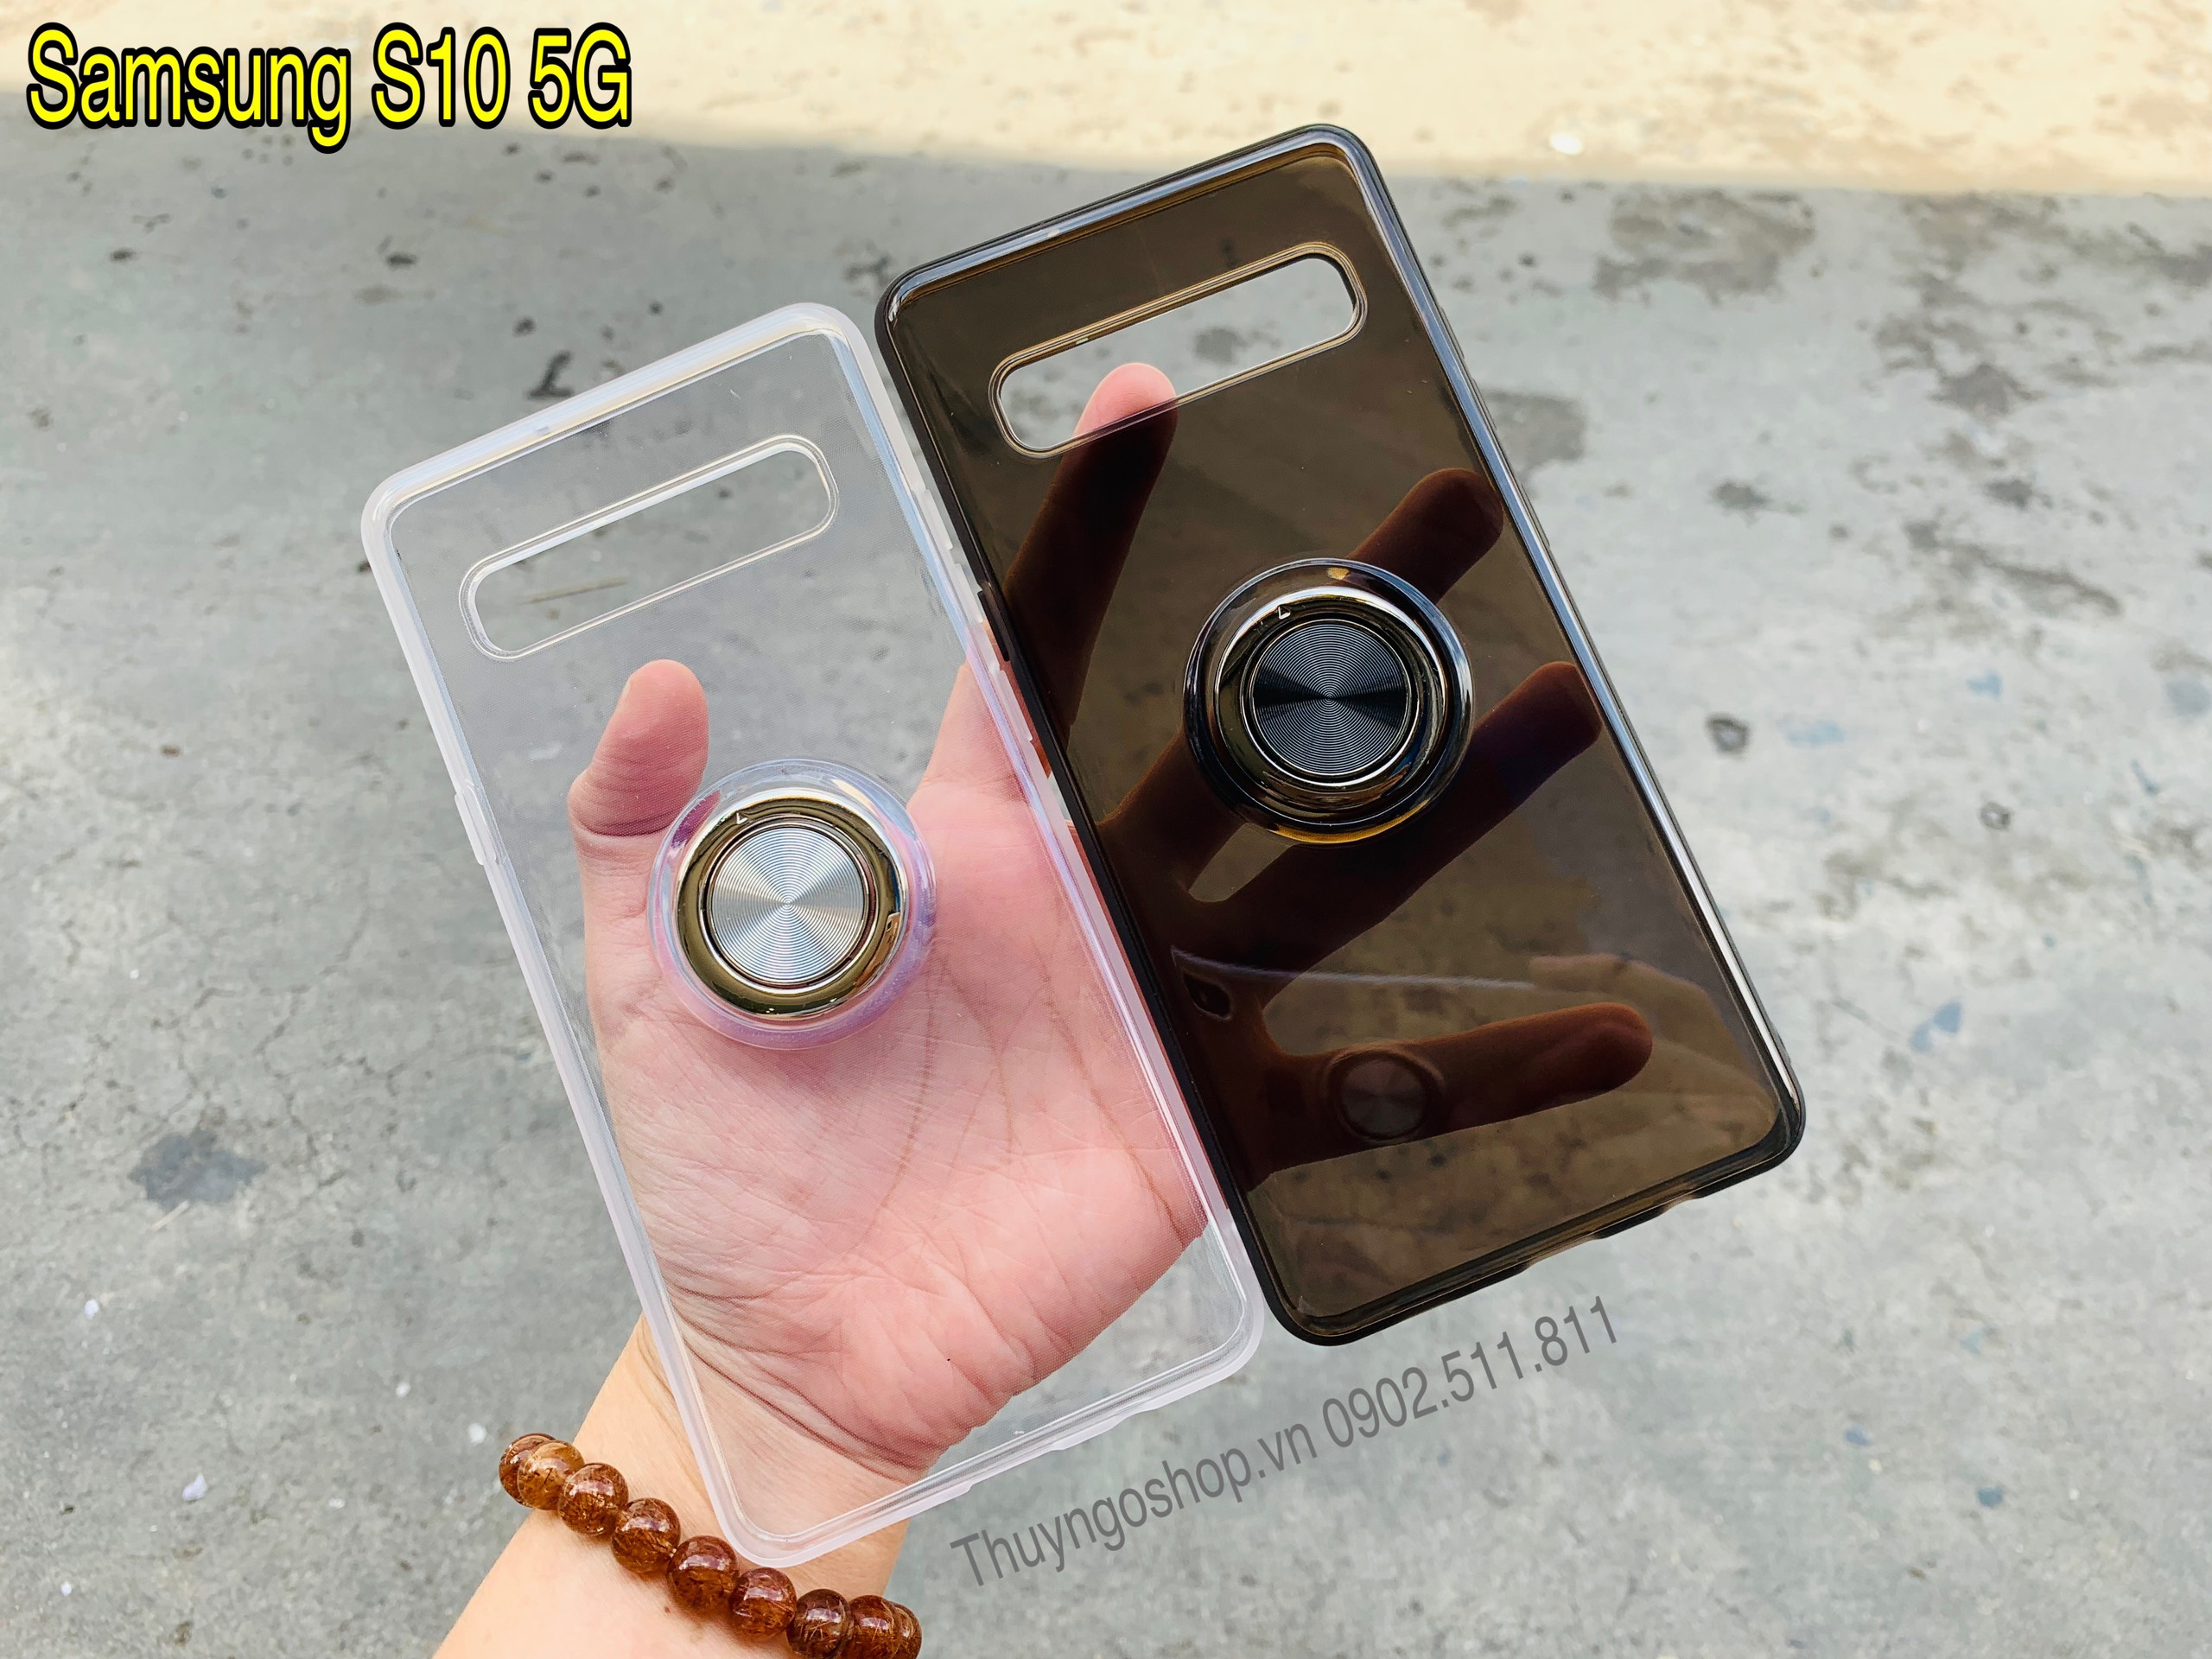 Ốp silicon kèm iring siêu mỏng xoay 360 - Samsung S10/S10 Plus/S105G/Note9/Note10/Note10 Plus